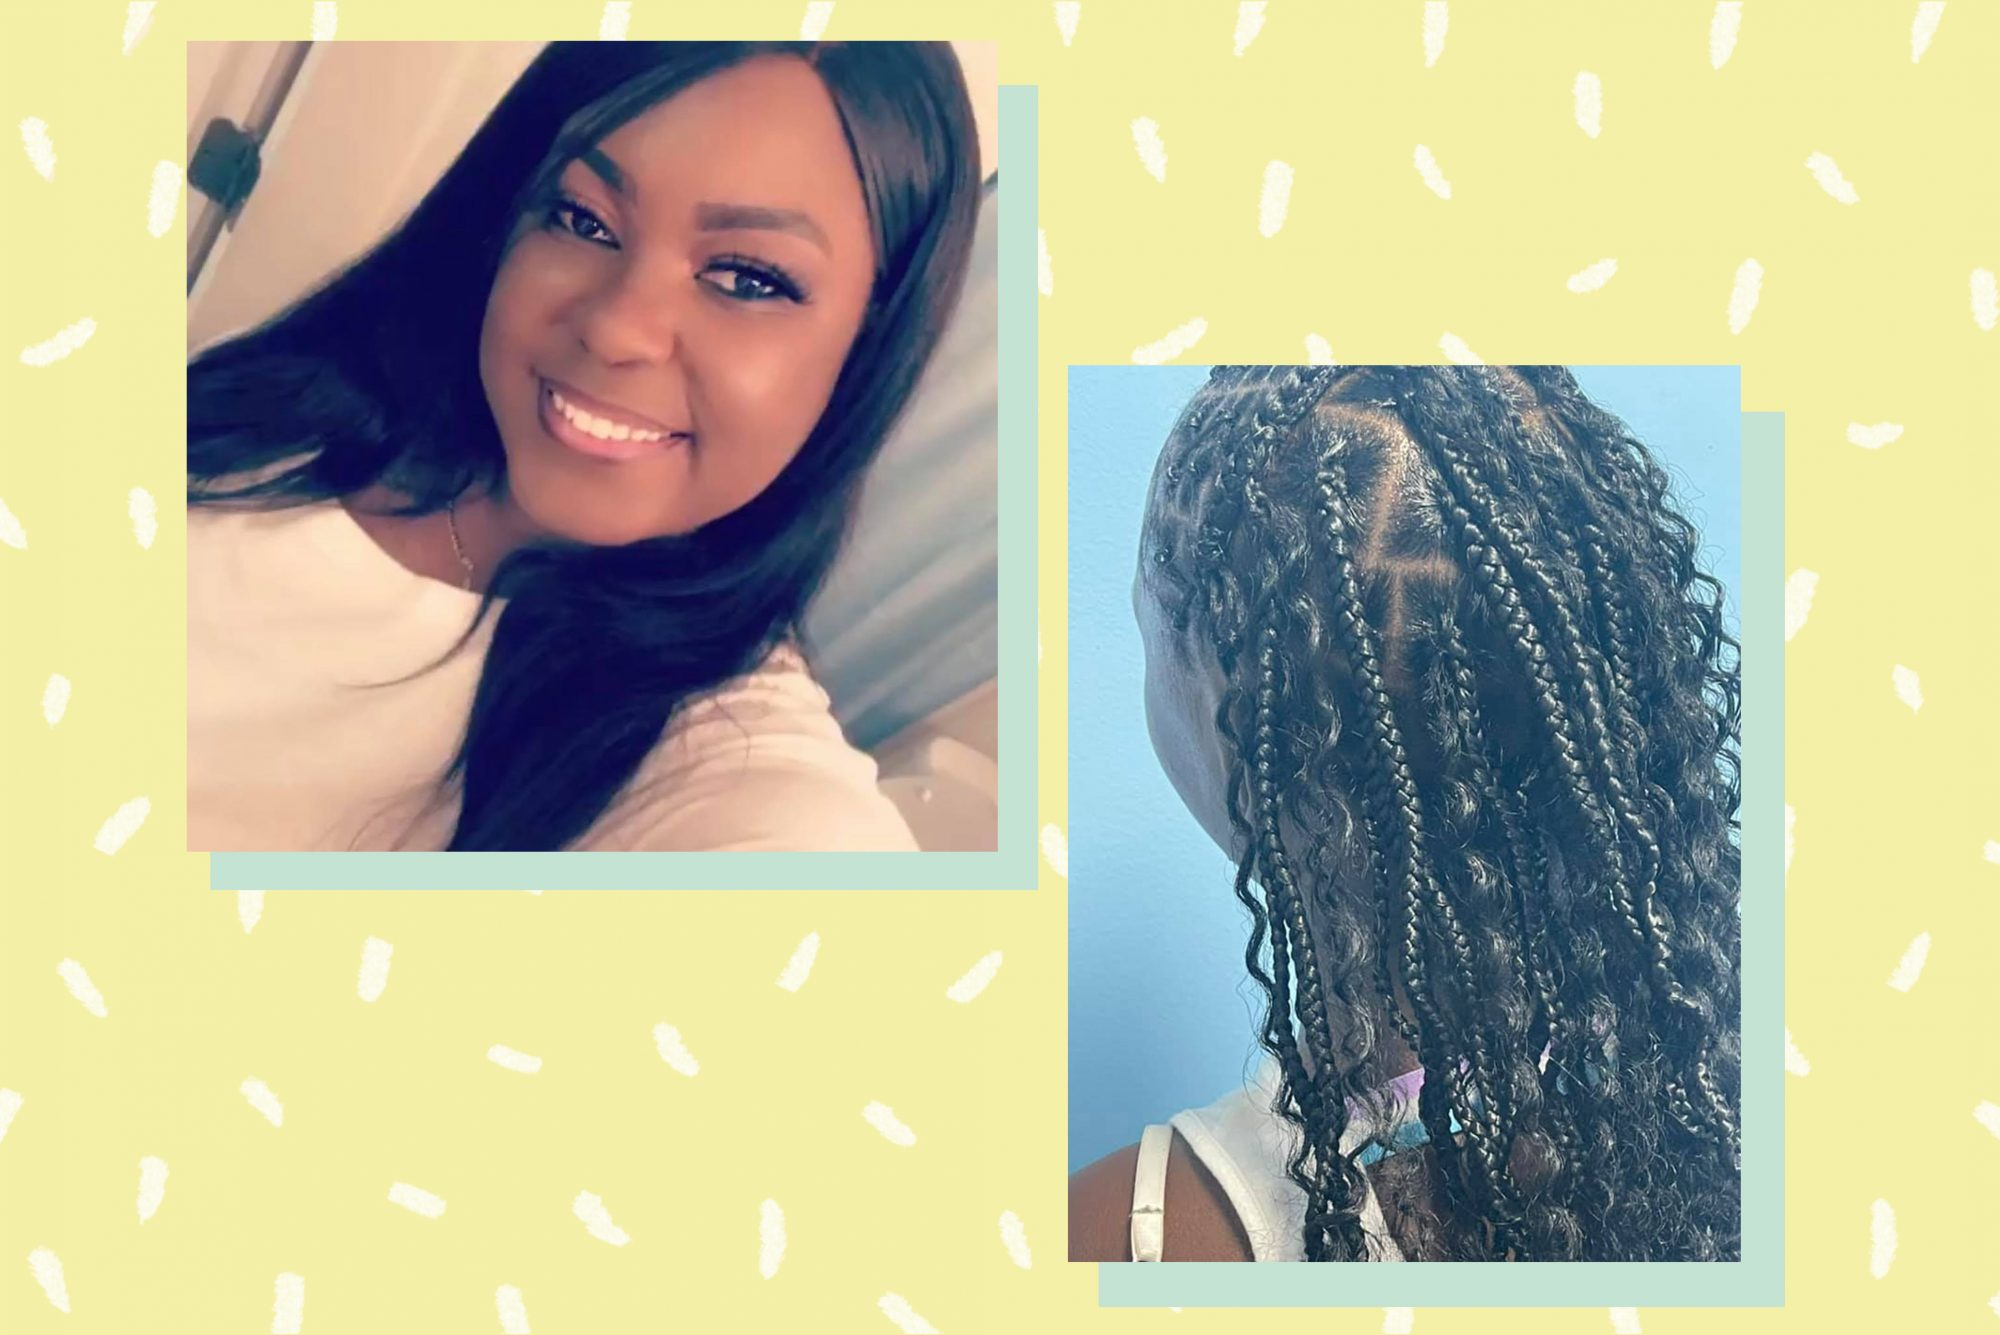 An image of Brittany Starks and her daughter's hair that she has braided.